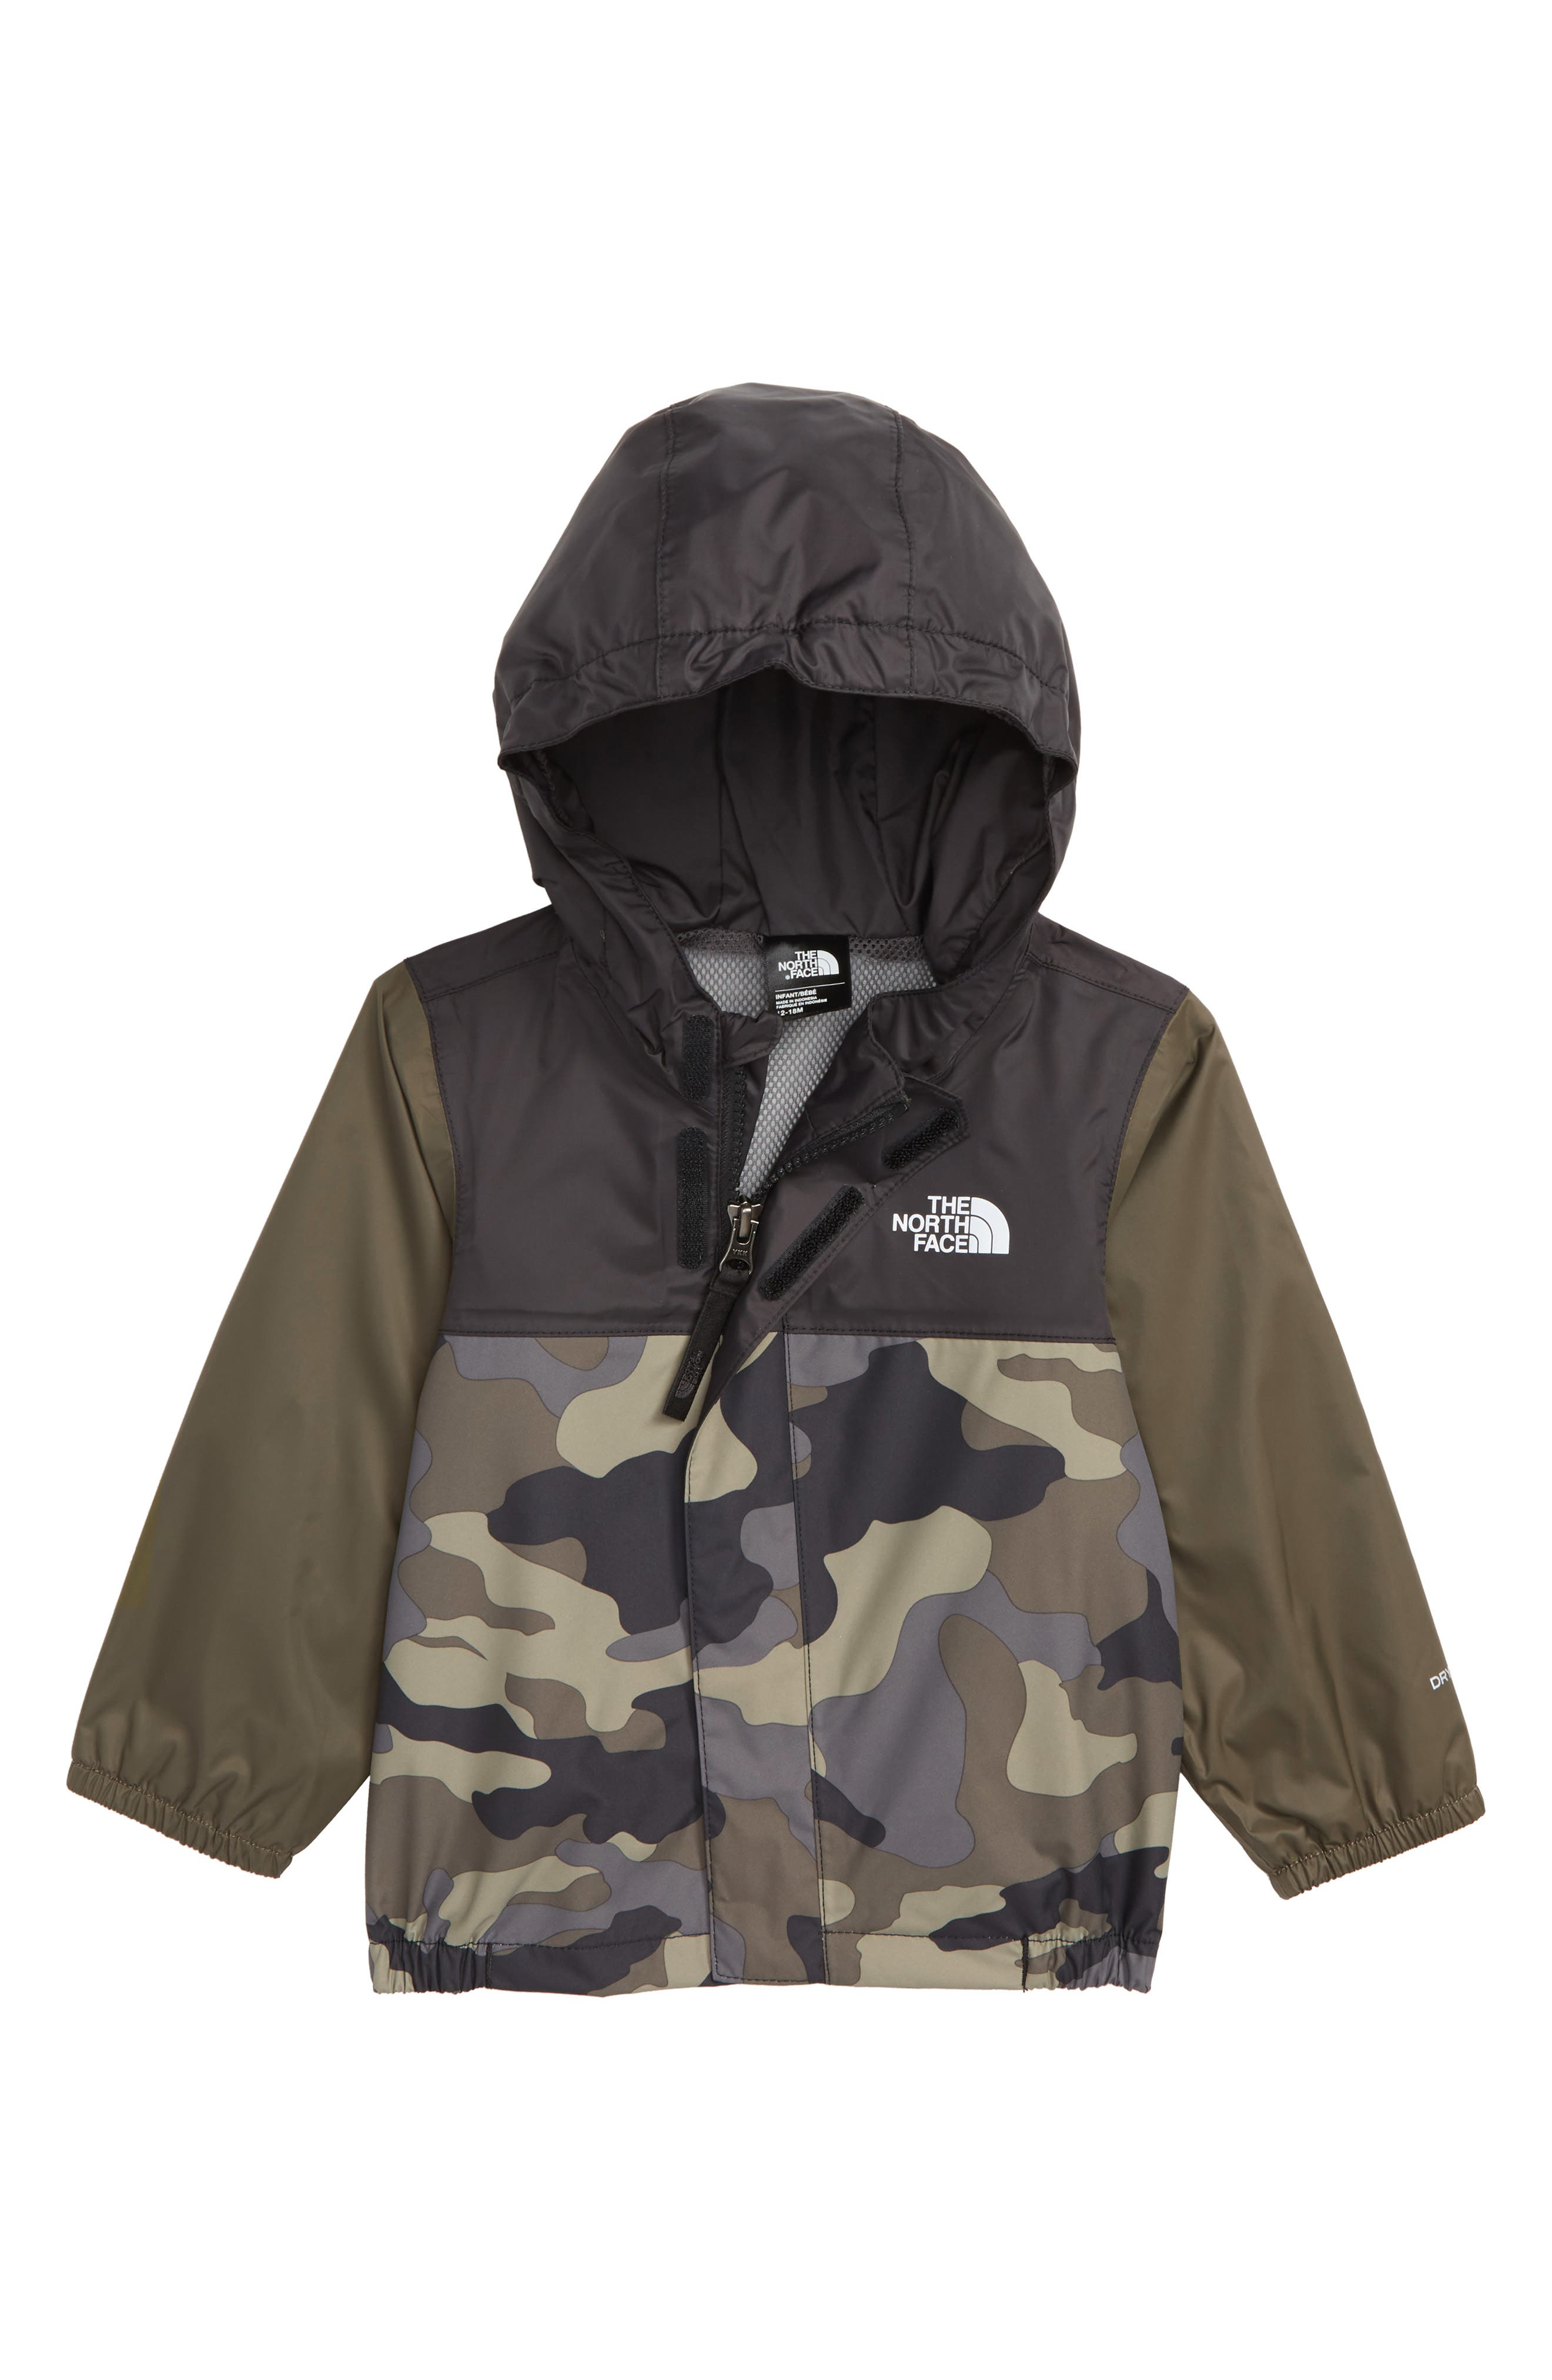 Tailout Hooded Rain Jacket,                         Main,                         color, TAUPE/ GREEN CAMO PRINT